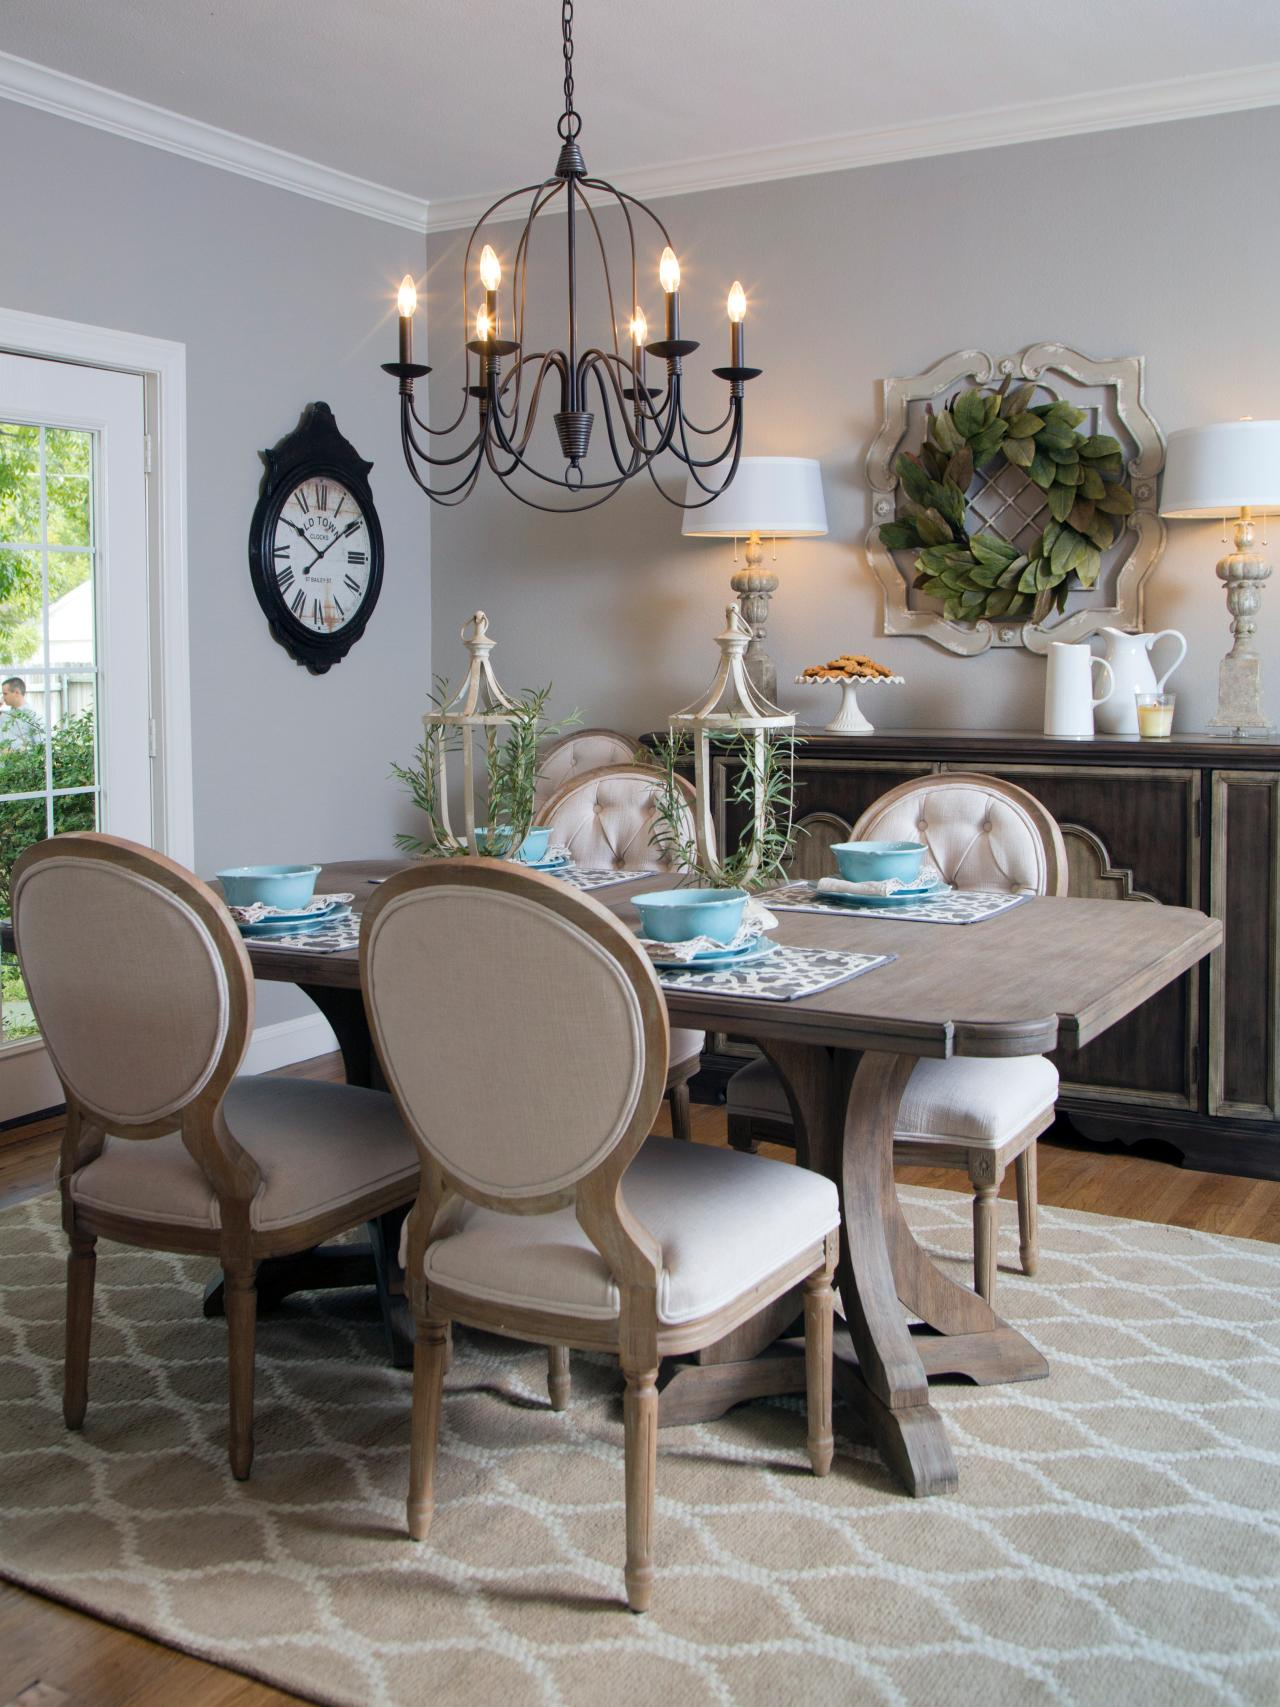 Photos hgtv for Vintage style dining room ideas